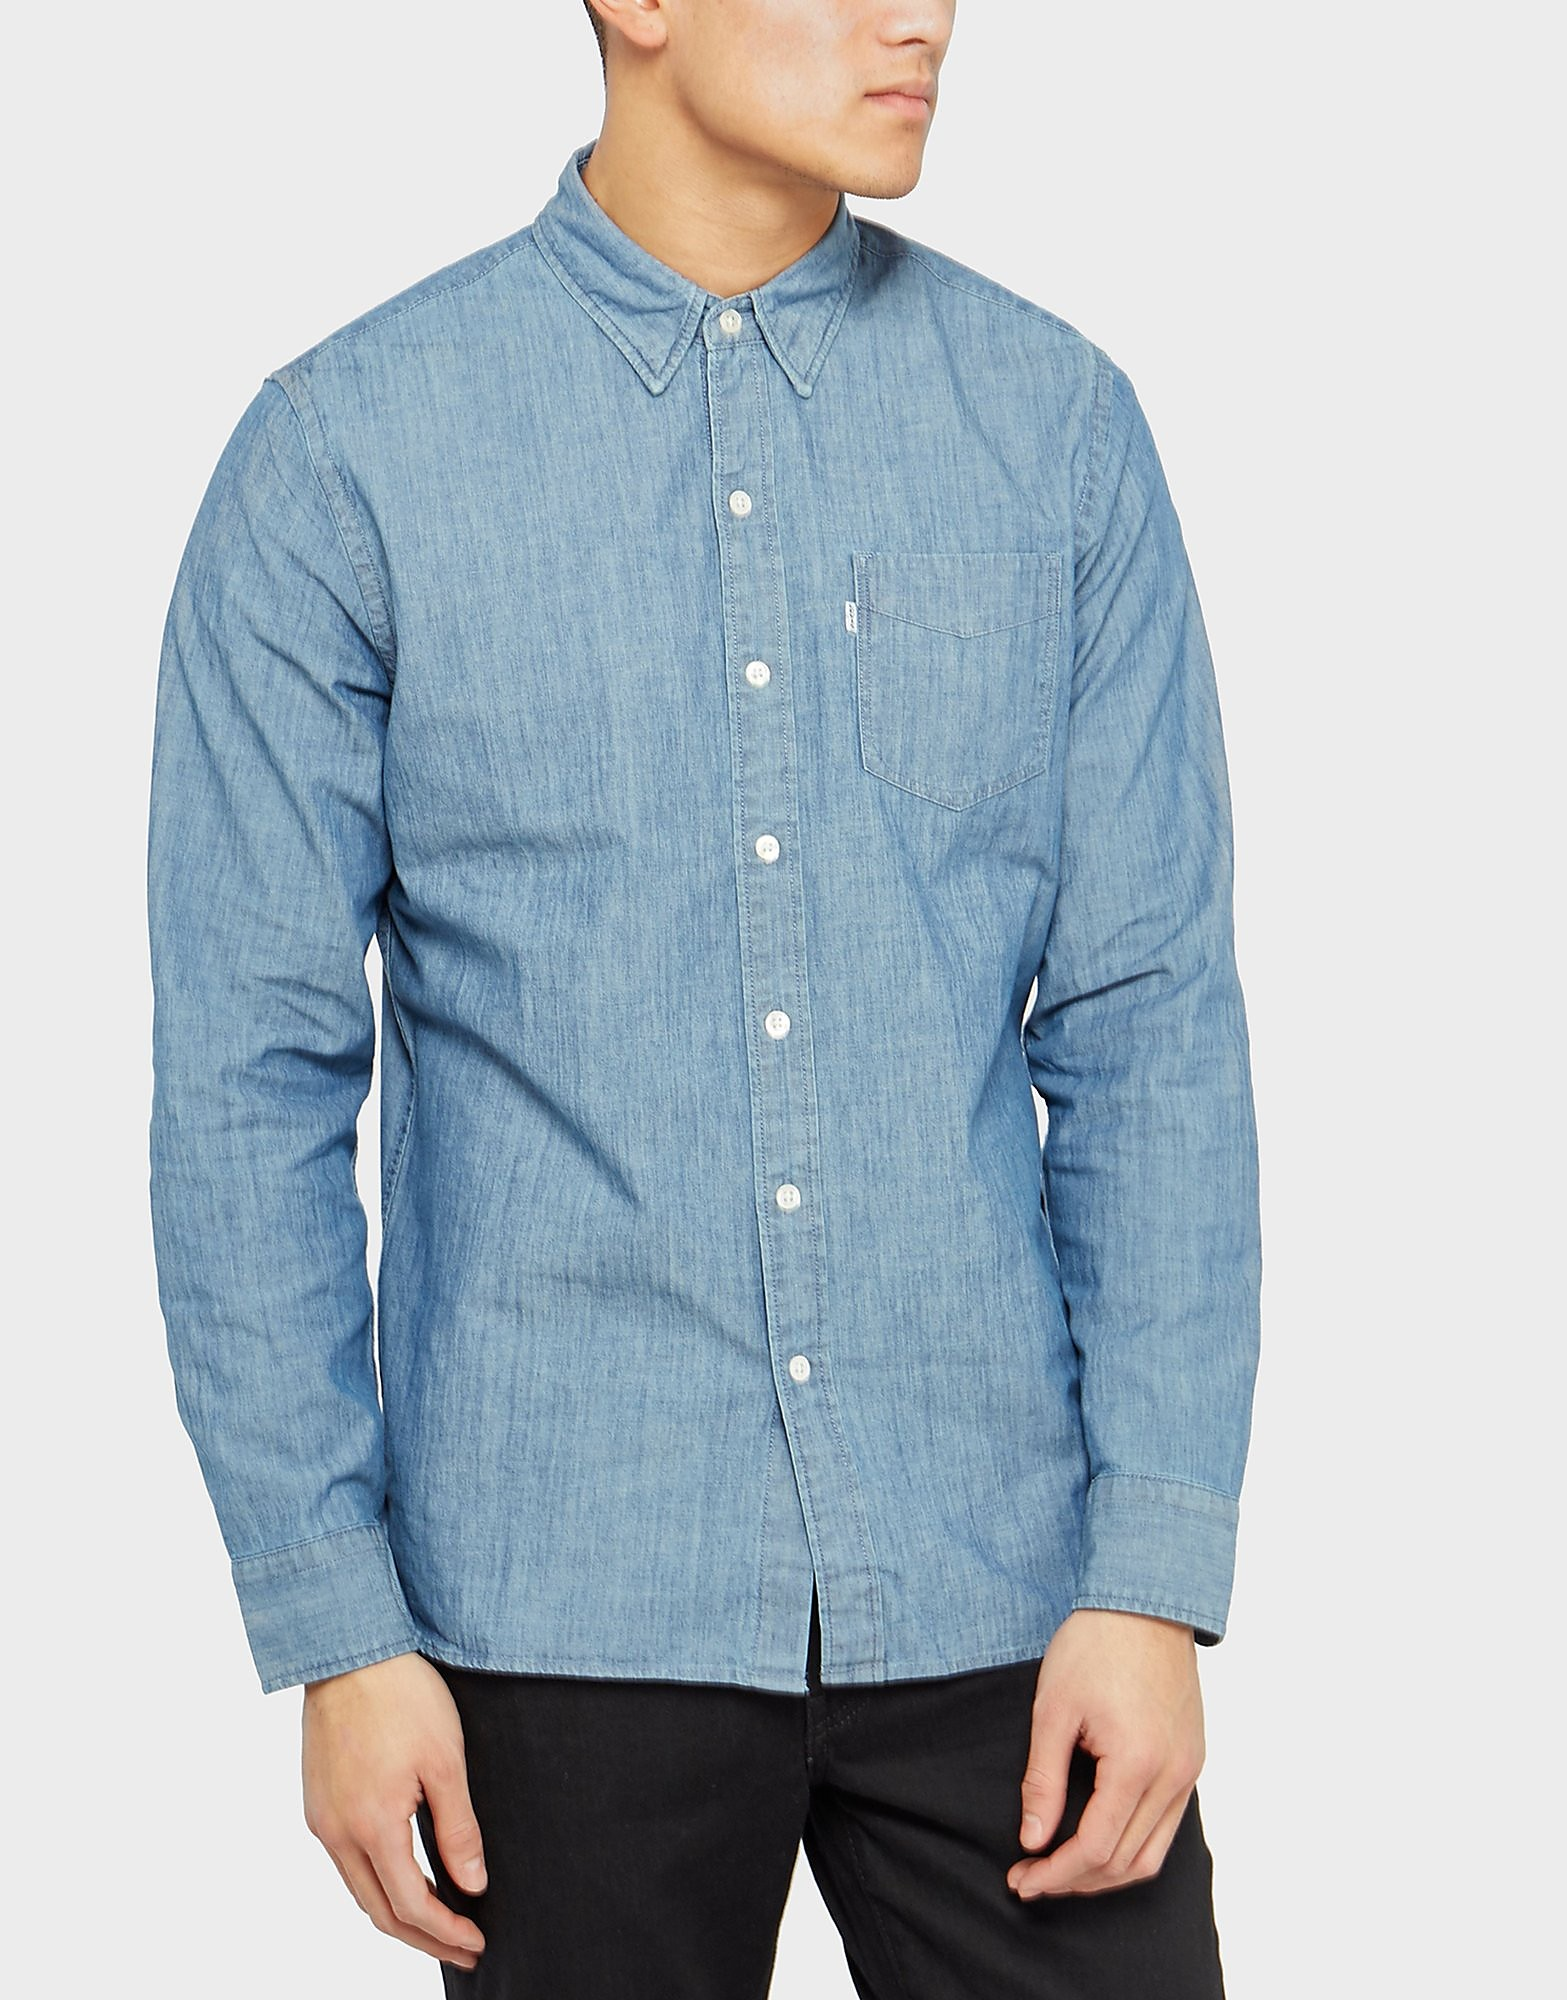 Levis Sunset Shirt